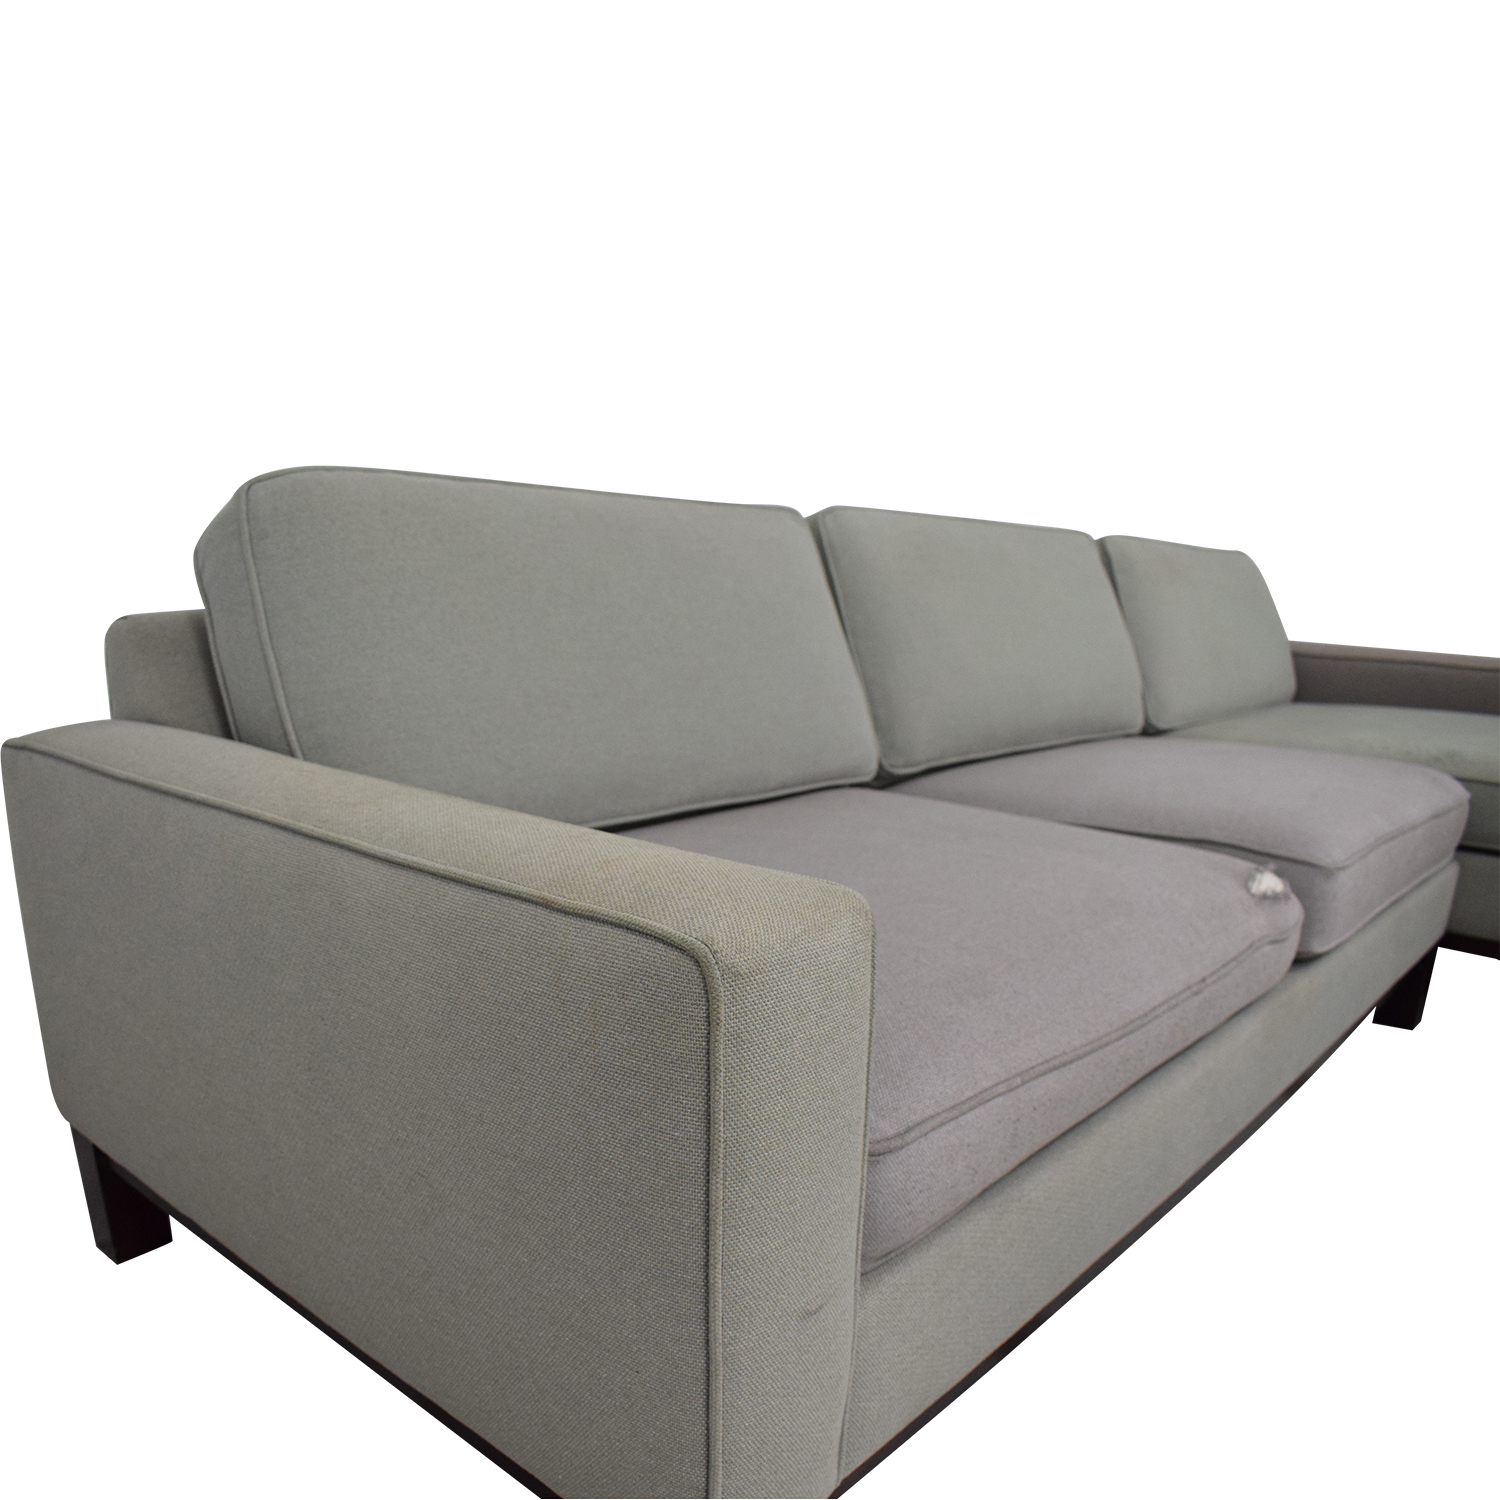 Room & Board Room & Board Chaise Sectional Sofa dimensions